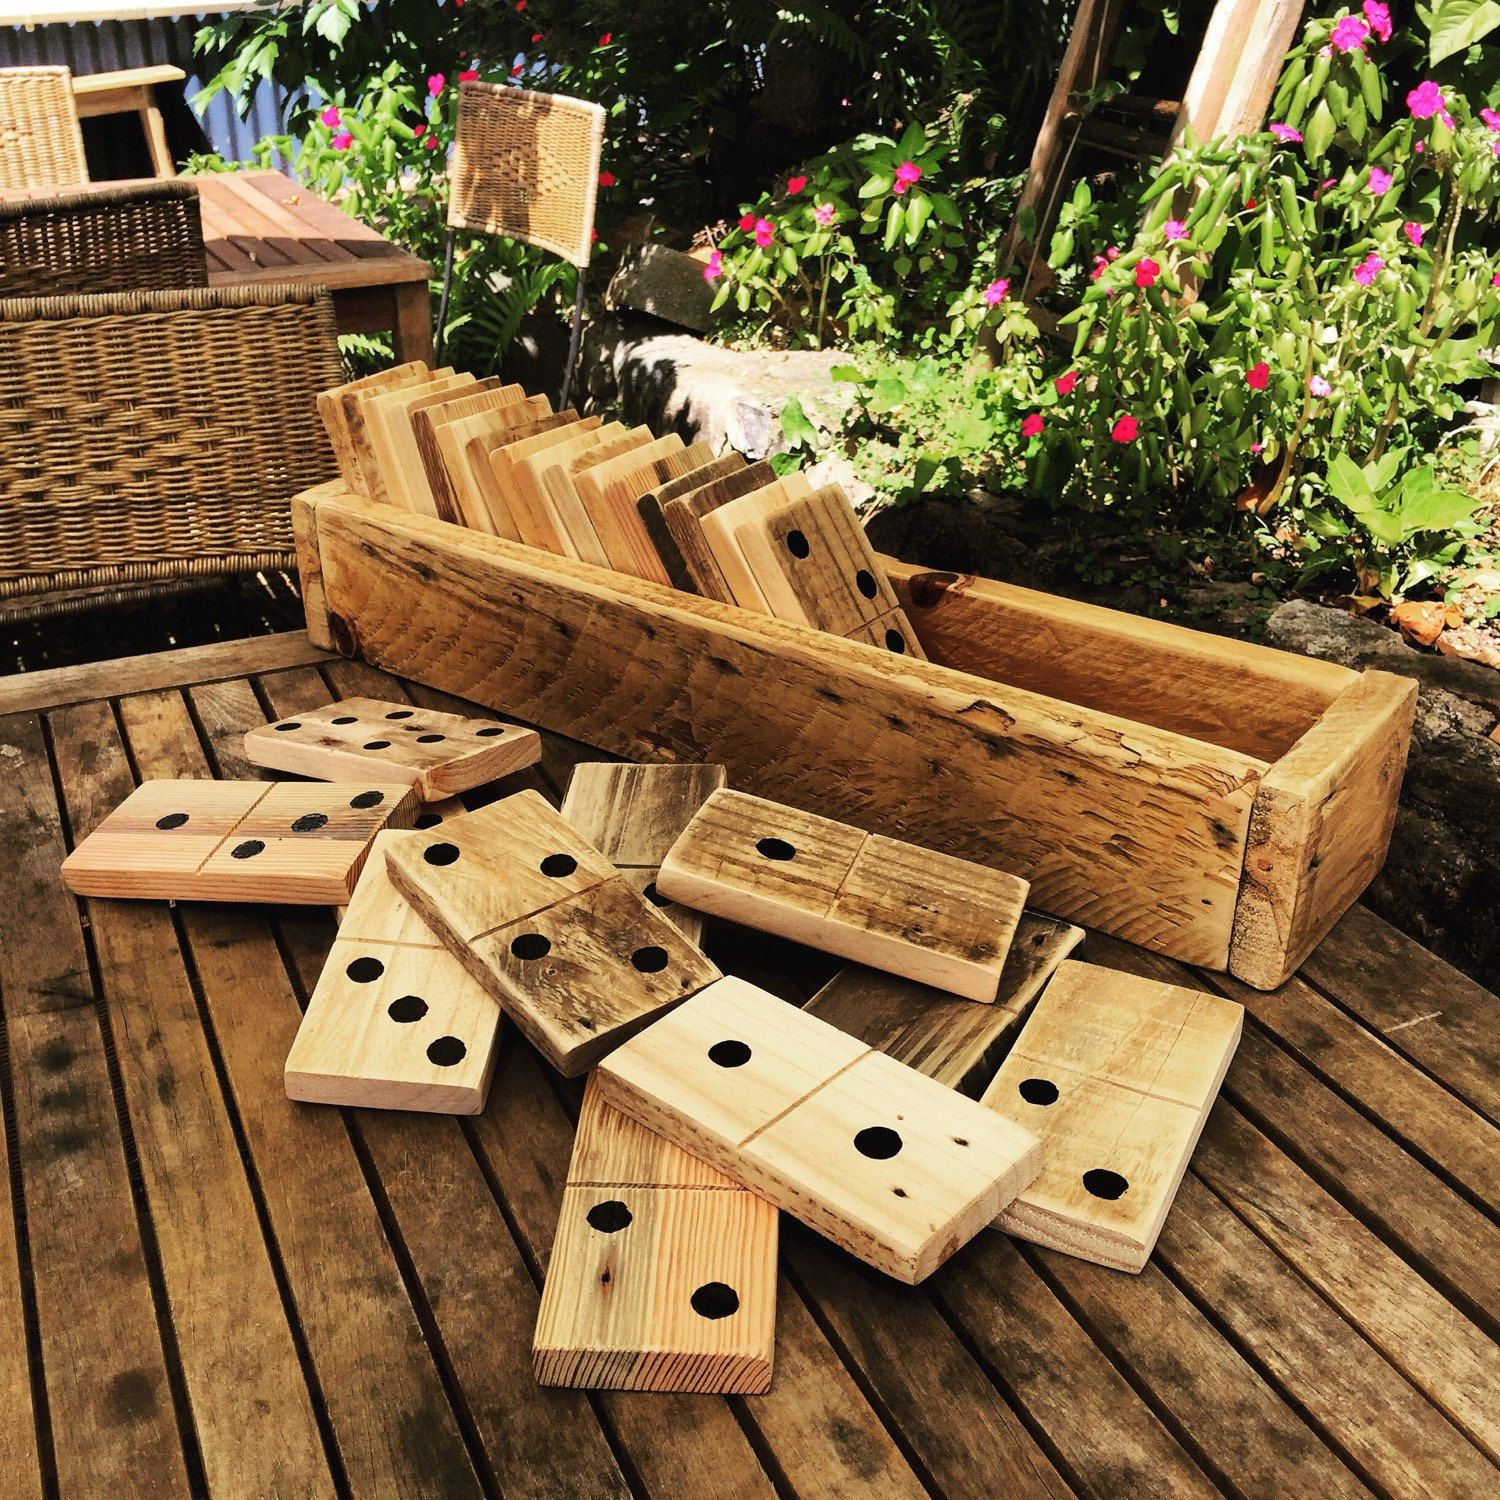 Large pallet dominoes in a sack pallets etsy and pallet for Pallet ideas for outside